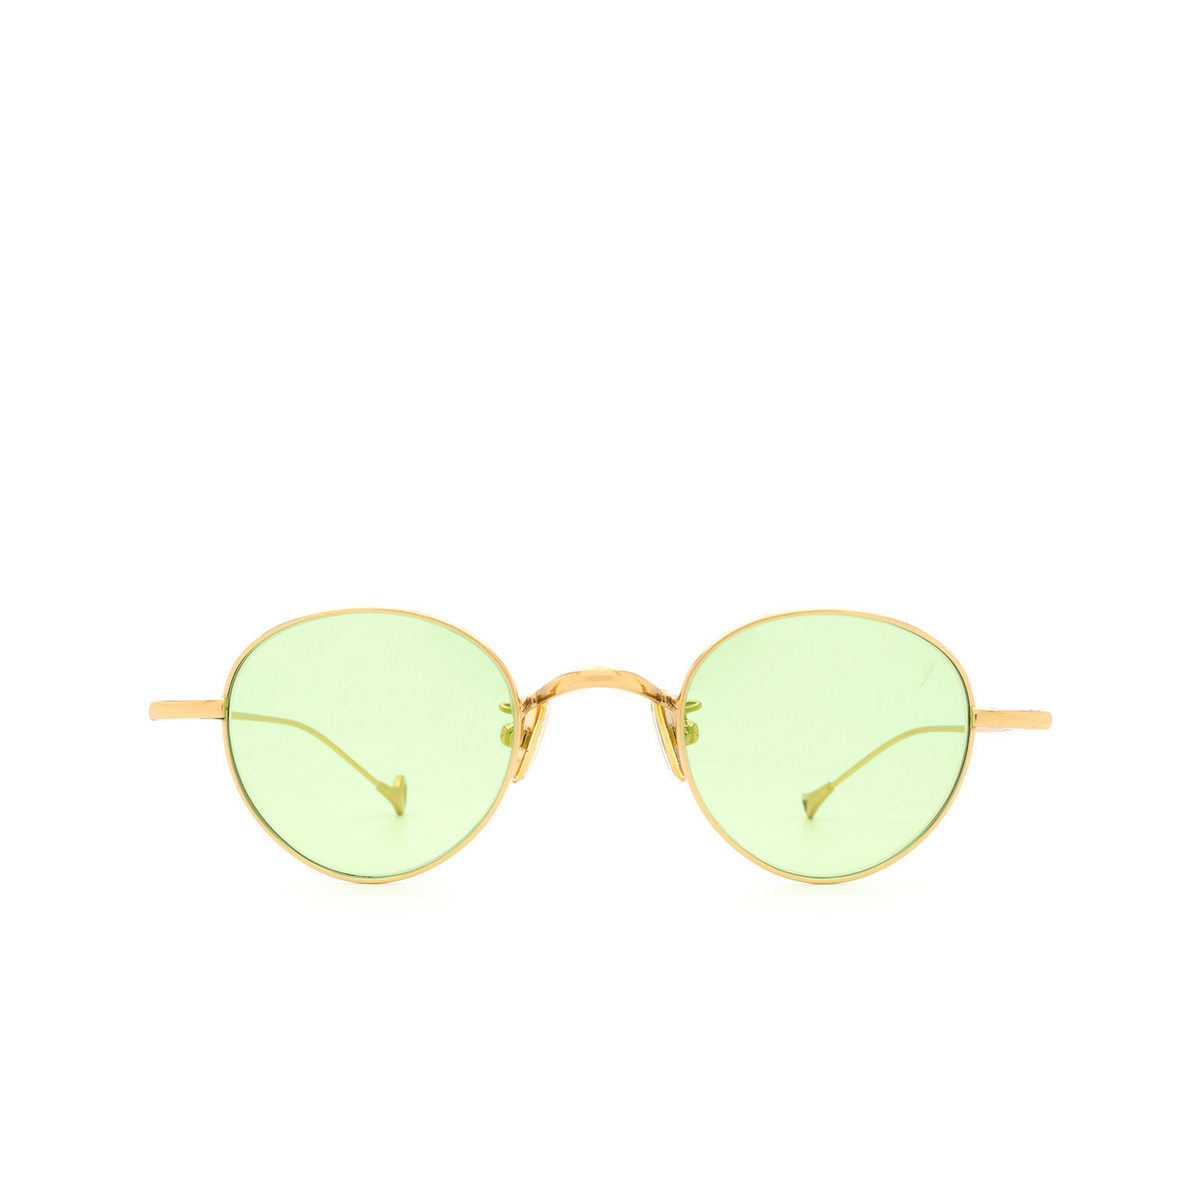 Eyepetizer® Round Sunglasses: Clint color Gold C.4-1 - front view.